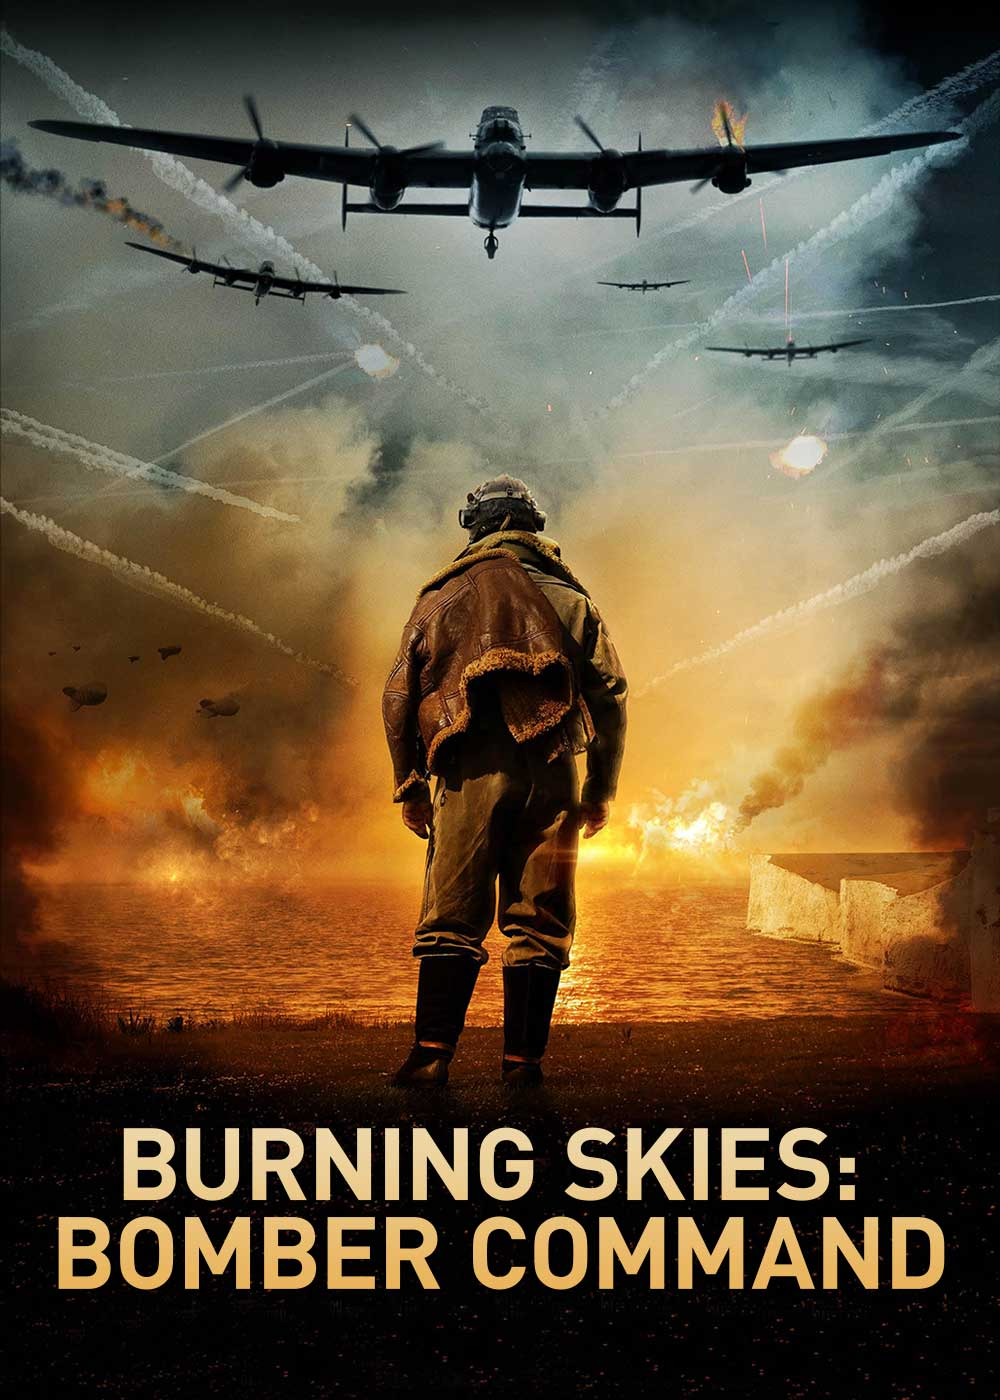 burningskies_poster.jpg